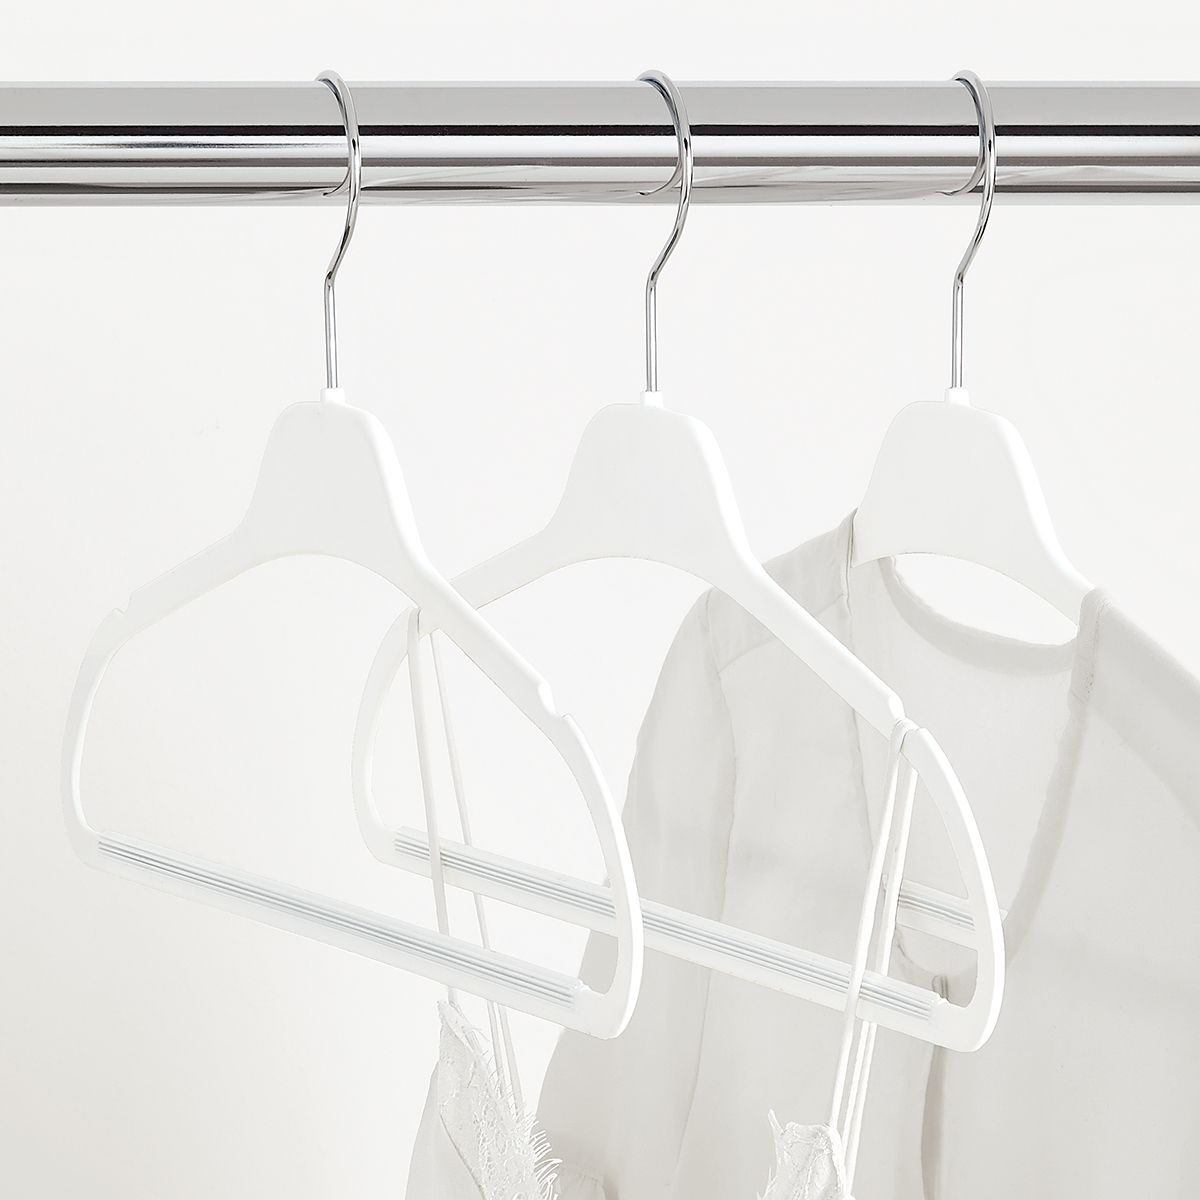 White Non-Slip Rubberized Suit Hangers Case of 40